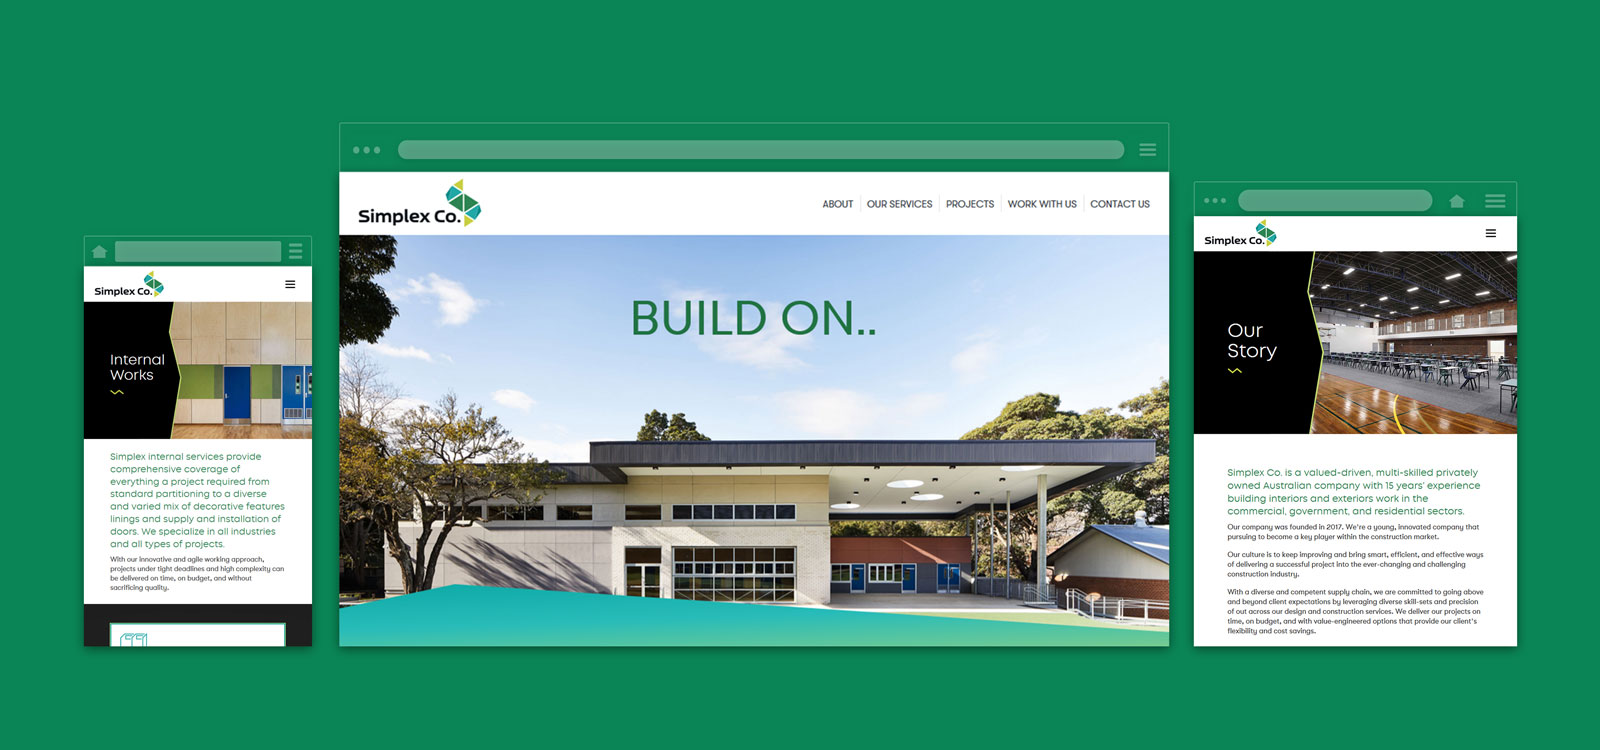 Web-design-for-internal-fit-out-services